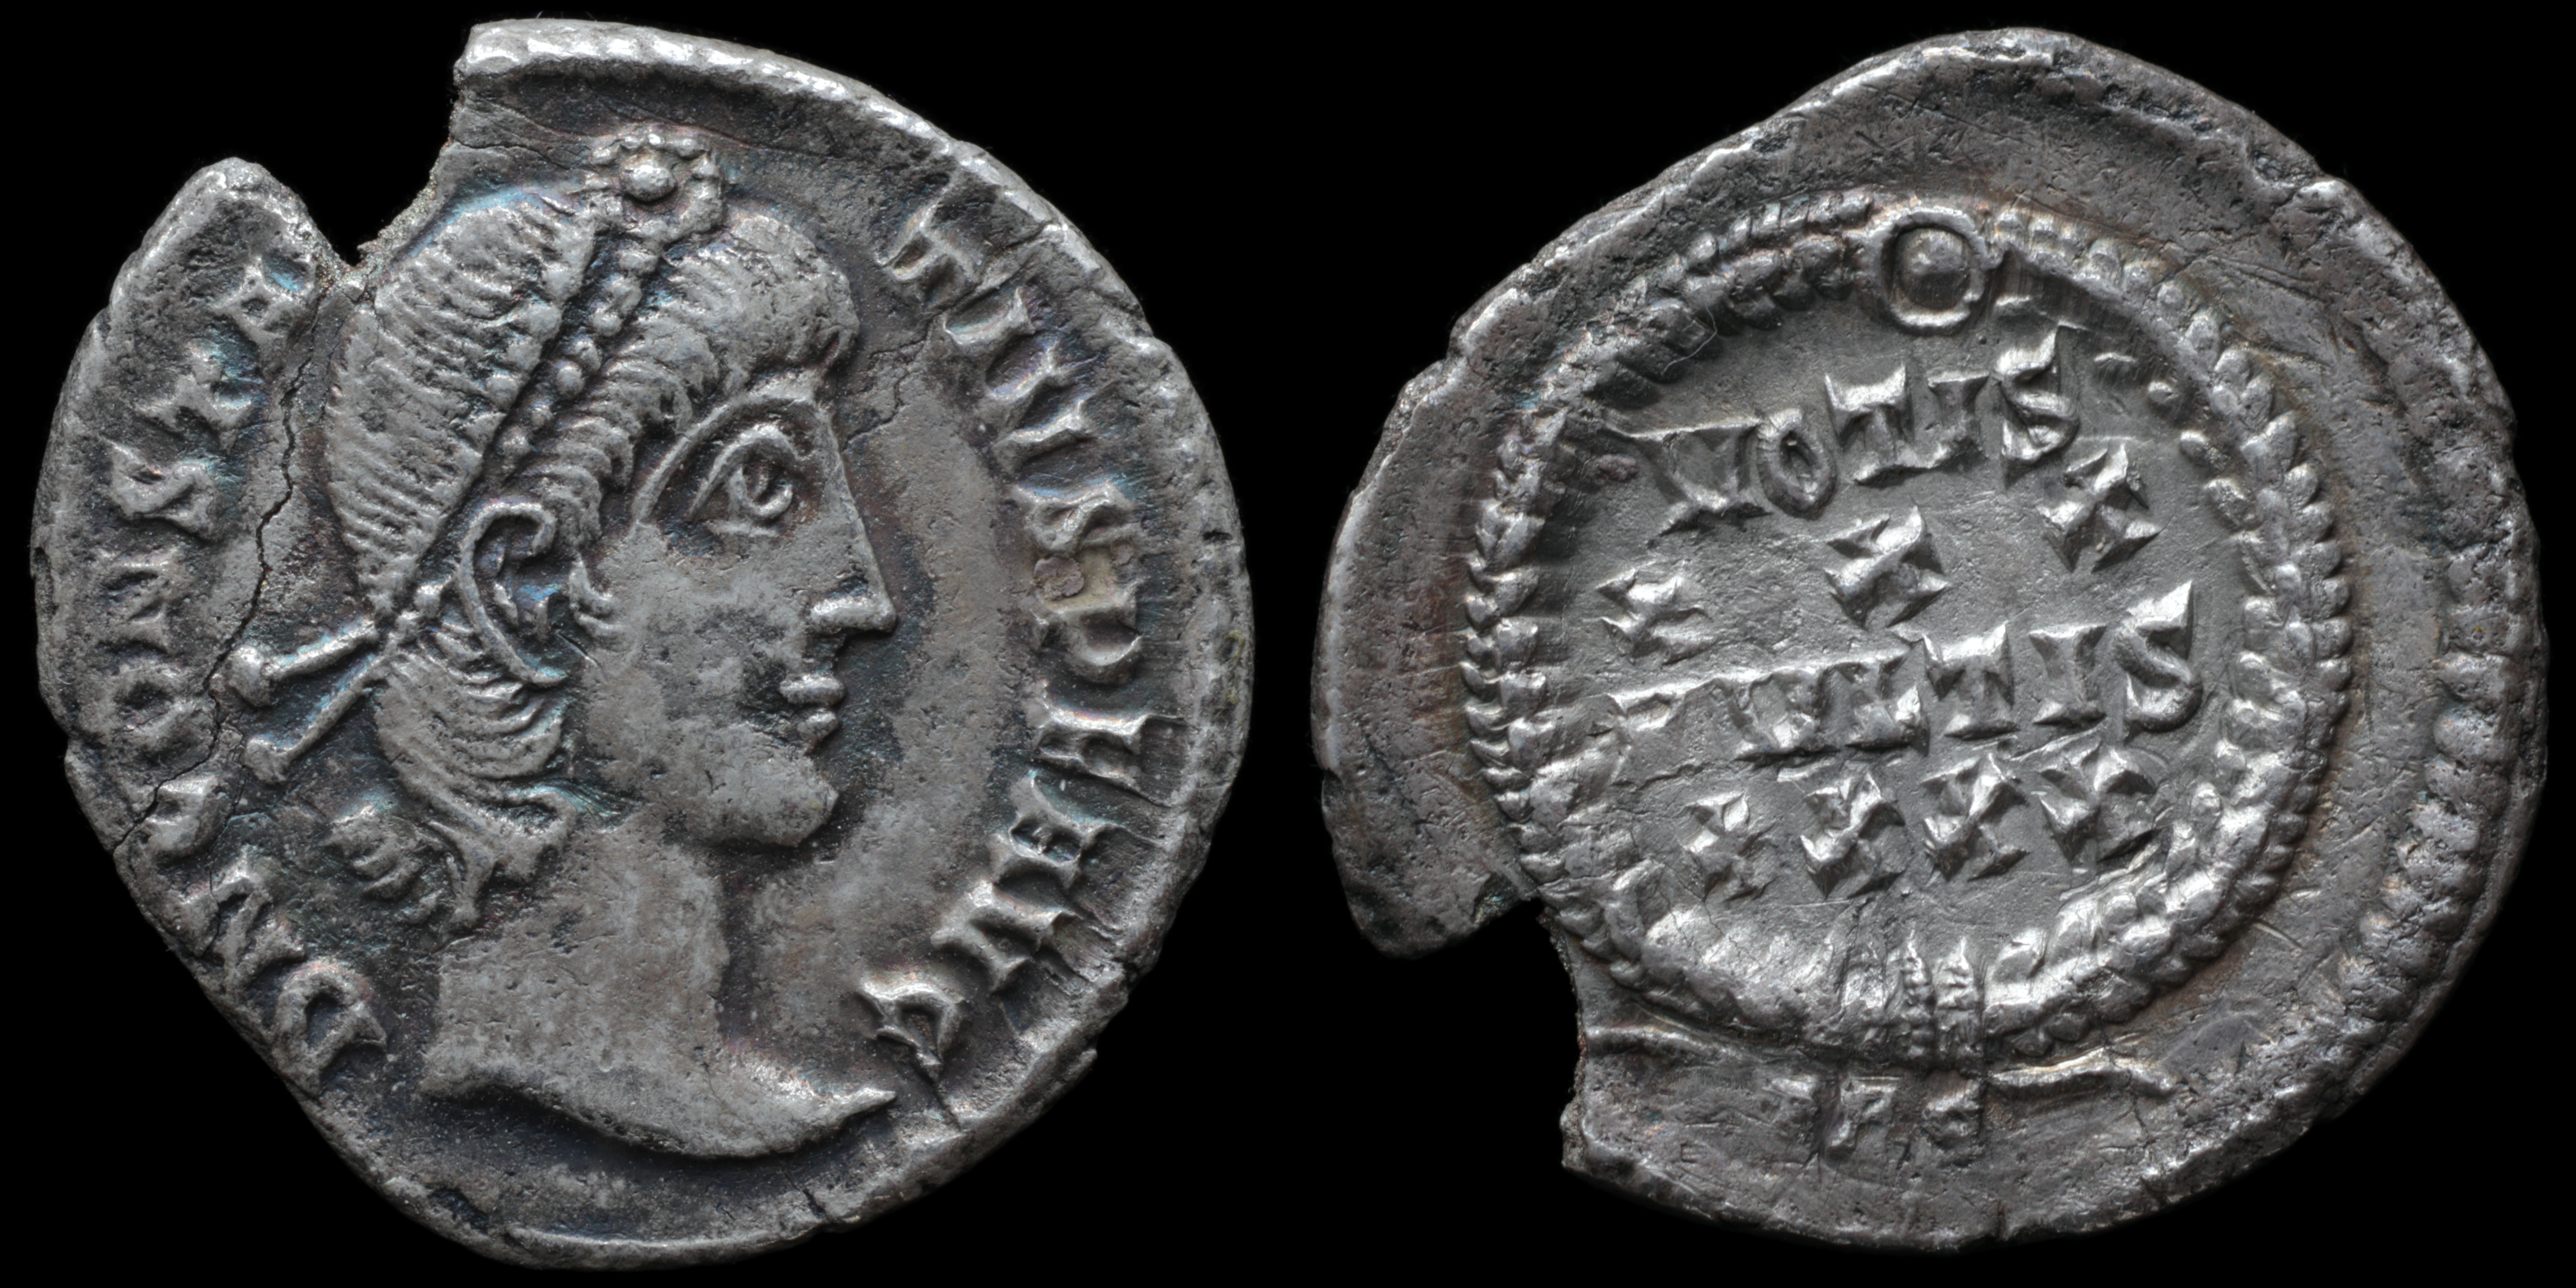 /Files/Images/Coinsite/CoinDB/17_Constantius_II_siliqua.jpg